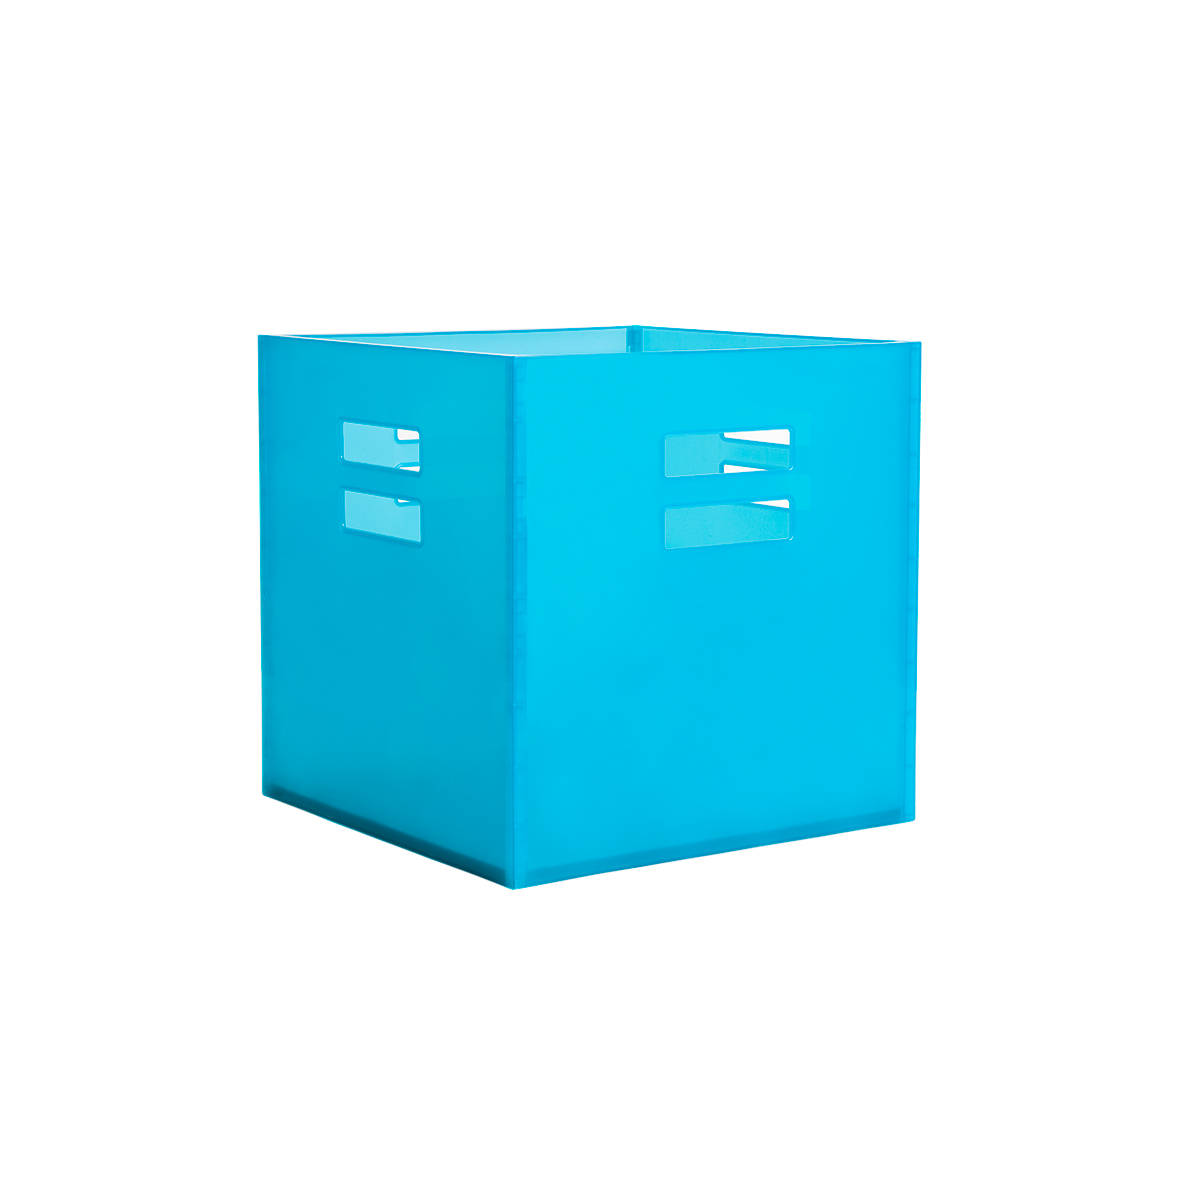 iCube Crate for Storage Cube System